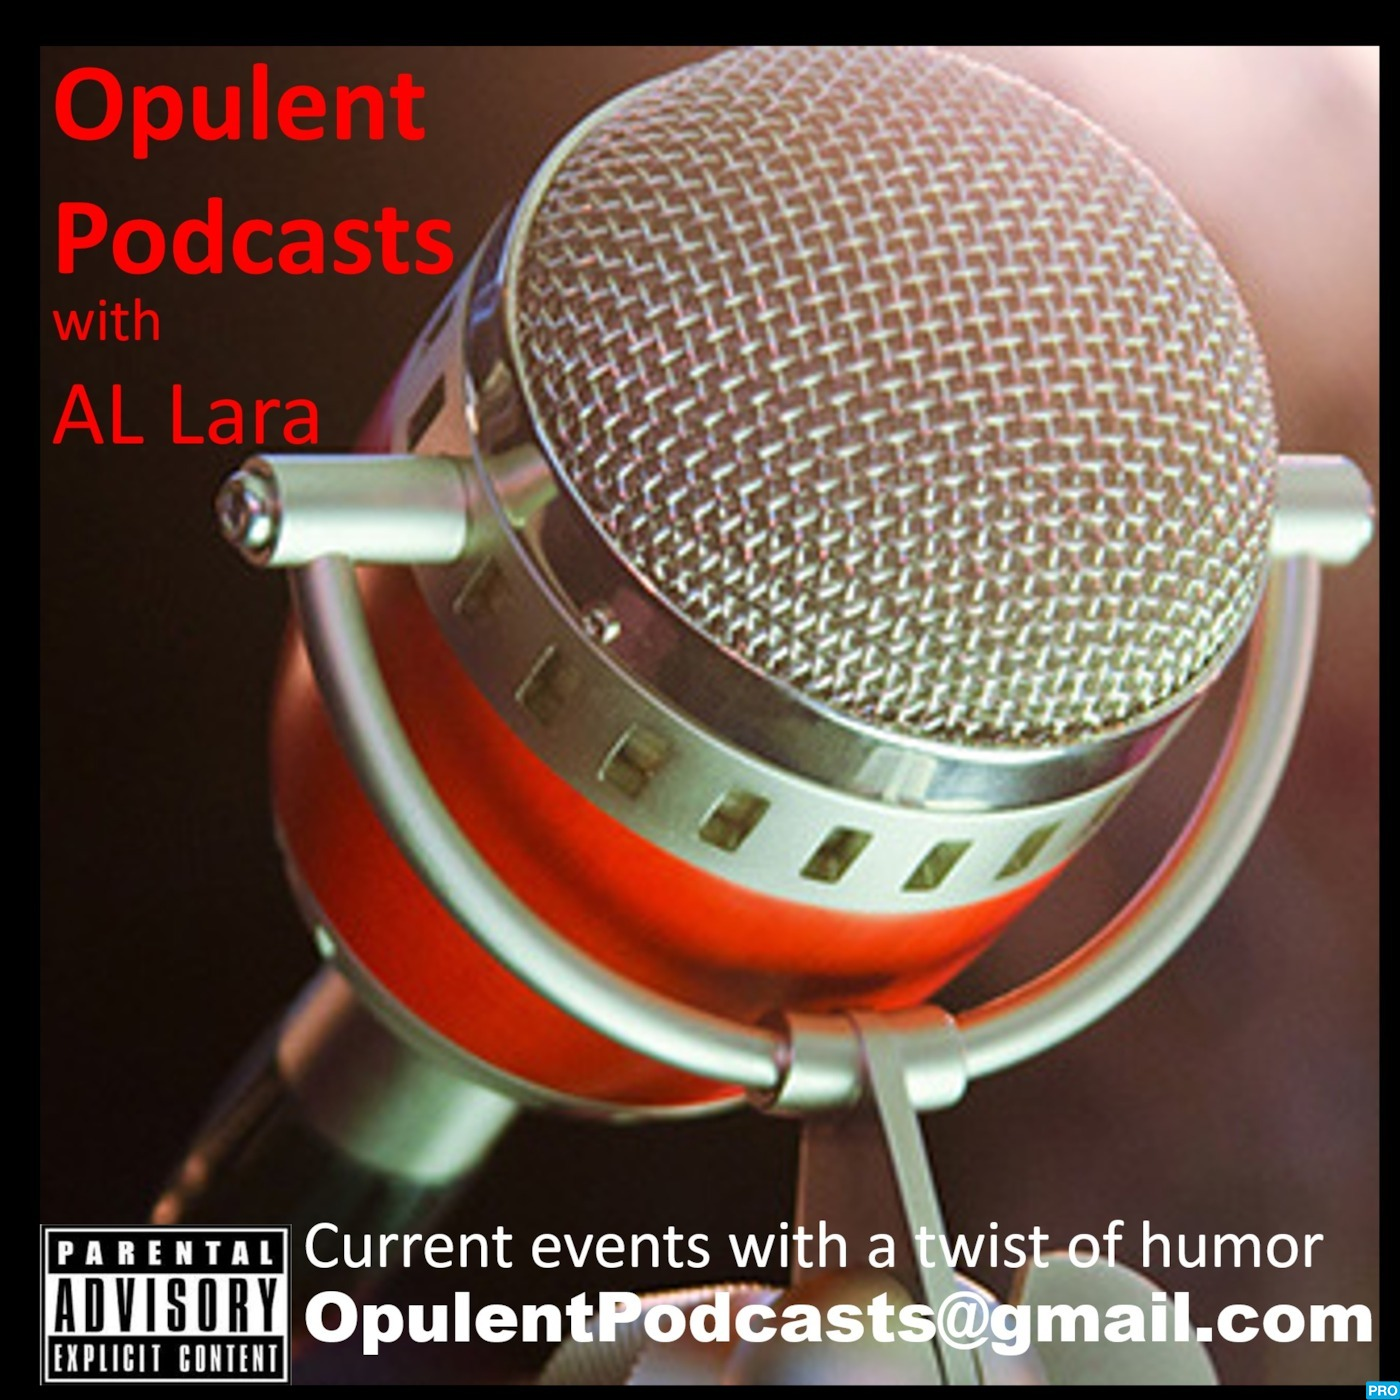 Opulent Podcasts